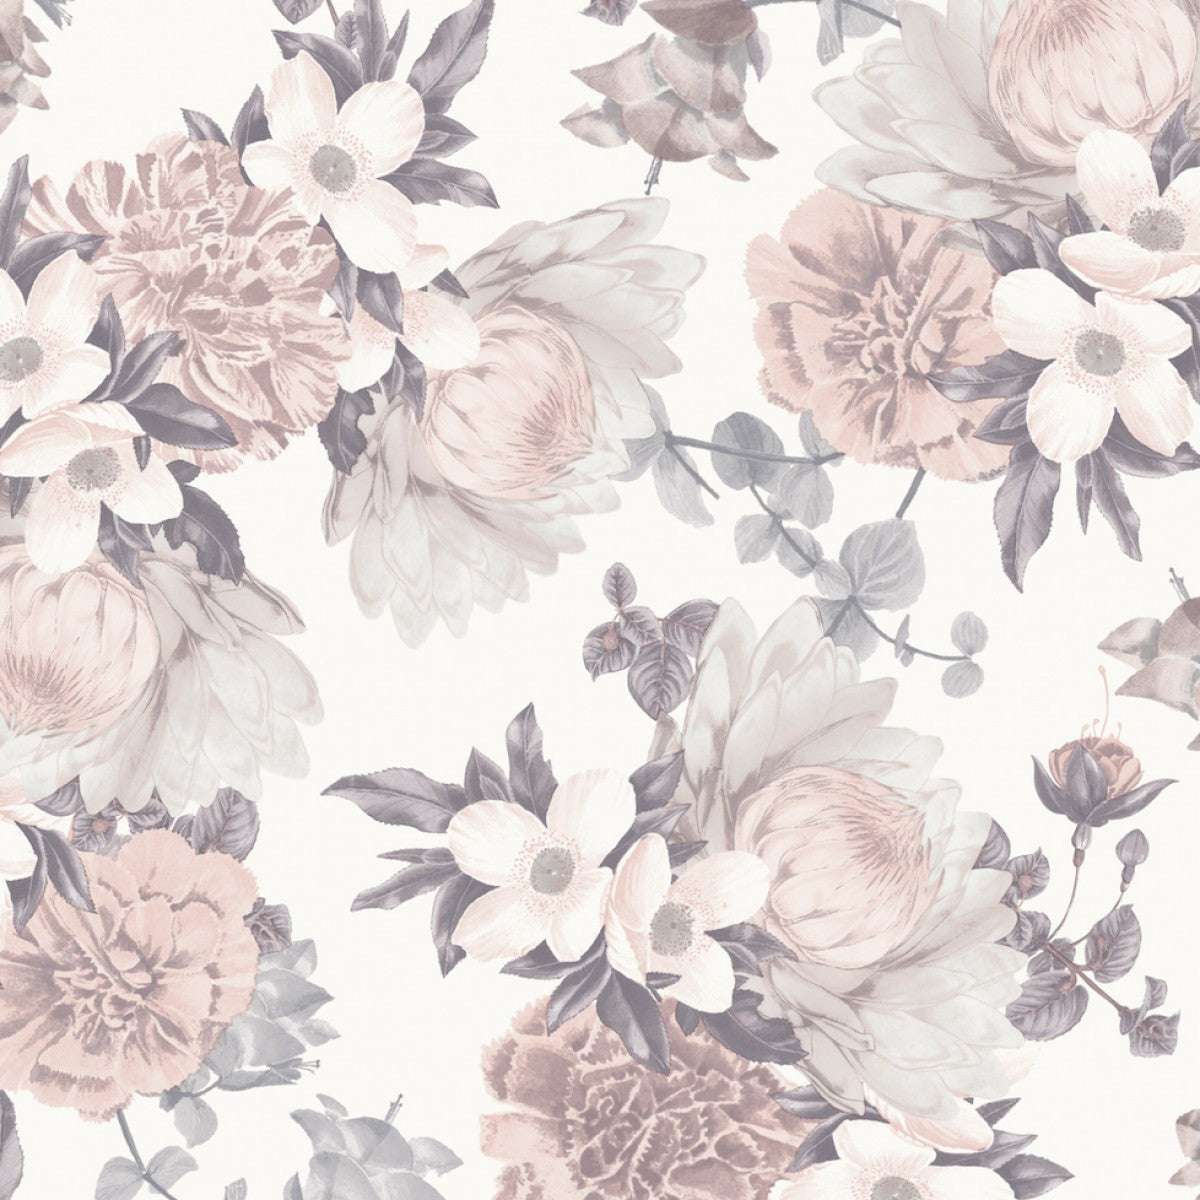 Botanical Self Adhesive Wallpaper In Blossom Design By